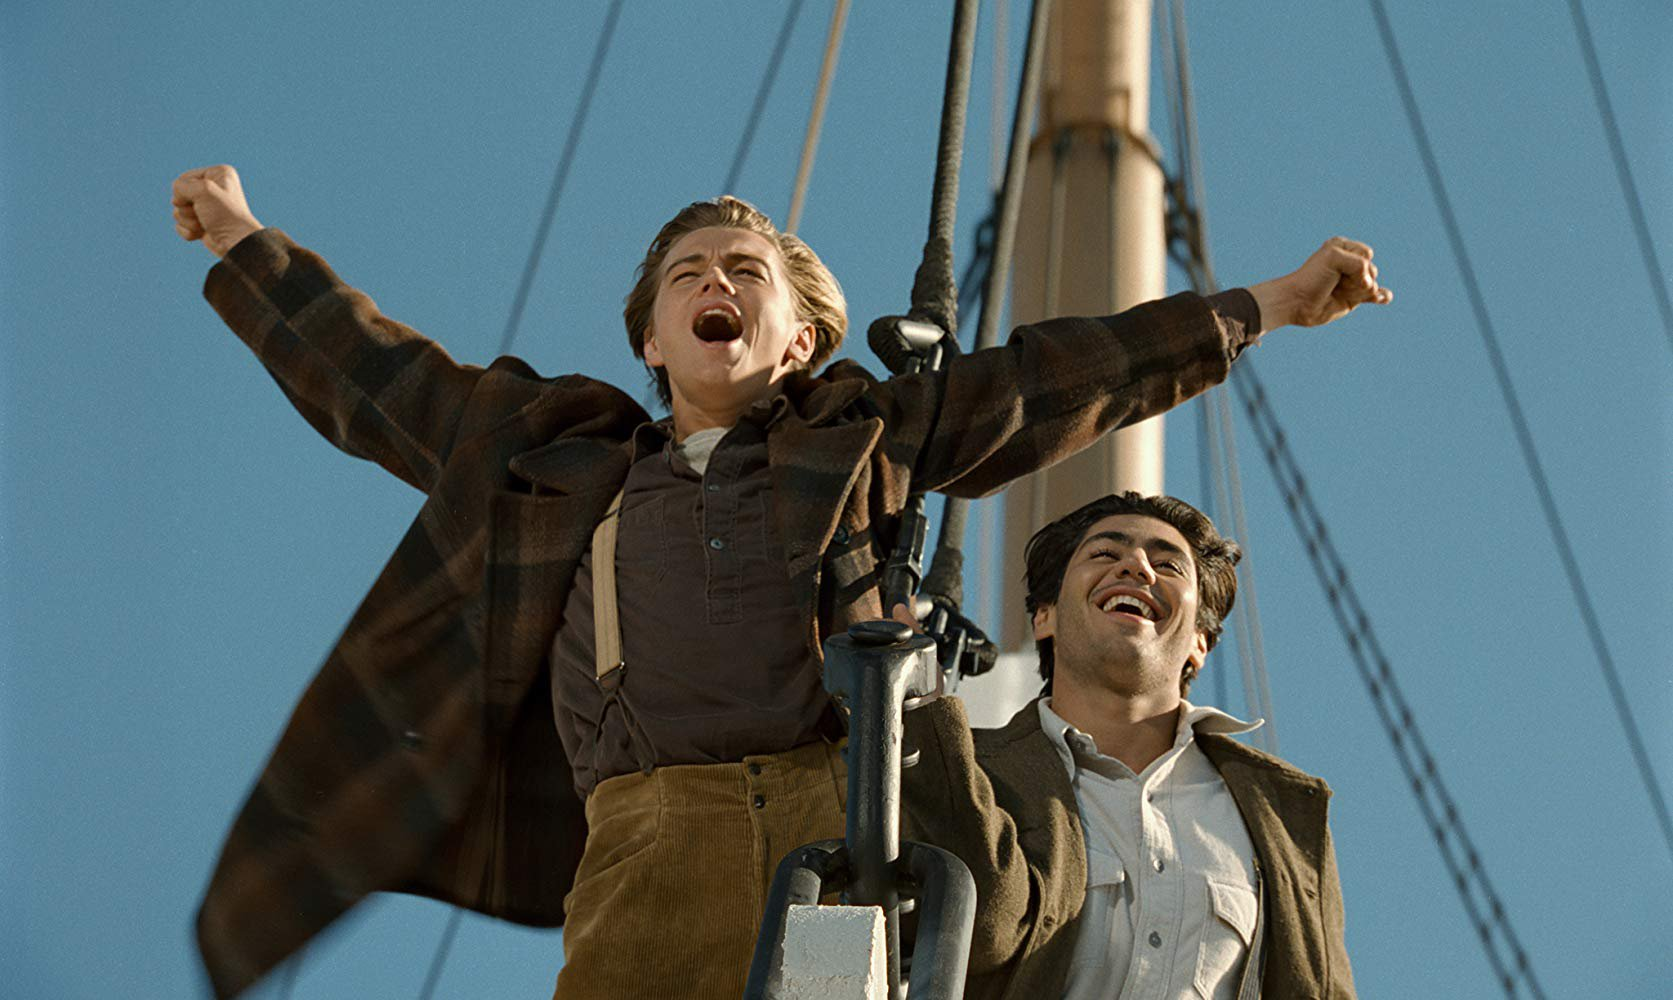 Leonardo DiCaprio didn't want to say iconic 'I'm the king of the world' line in Titanic and we are shook